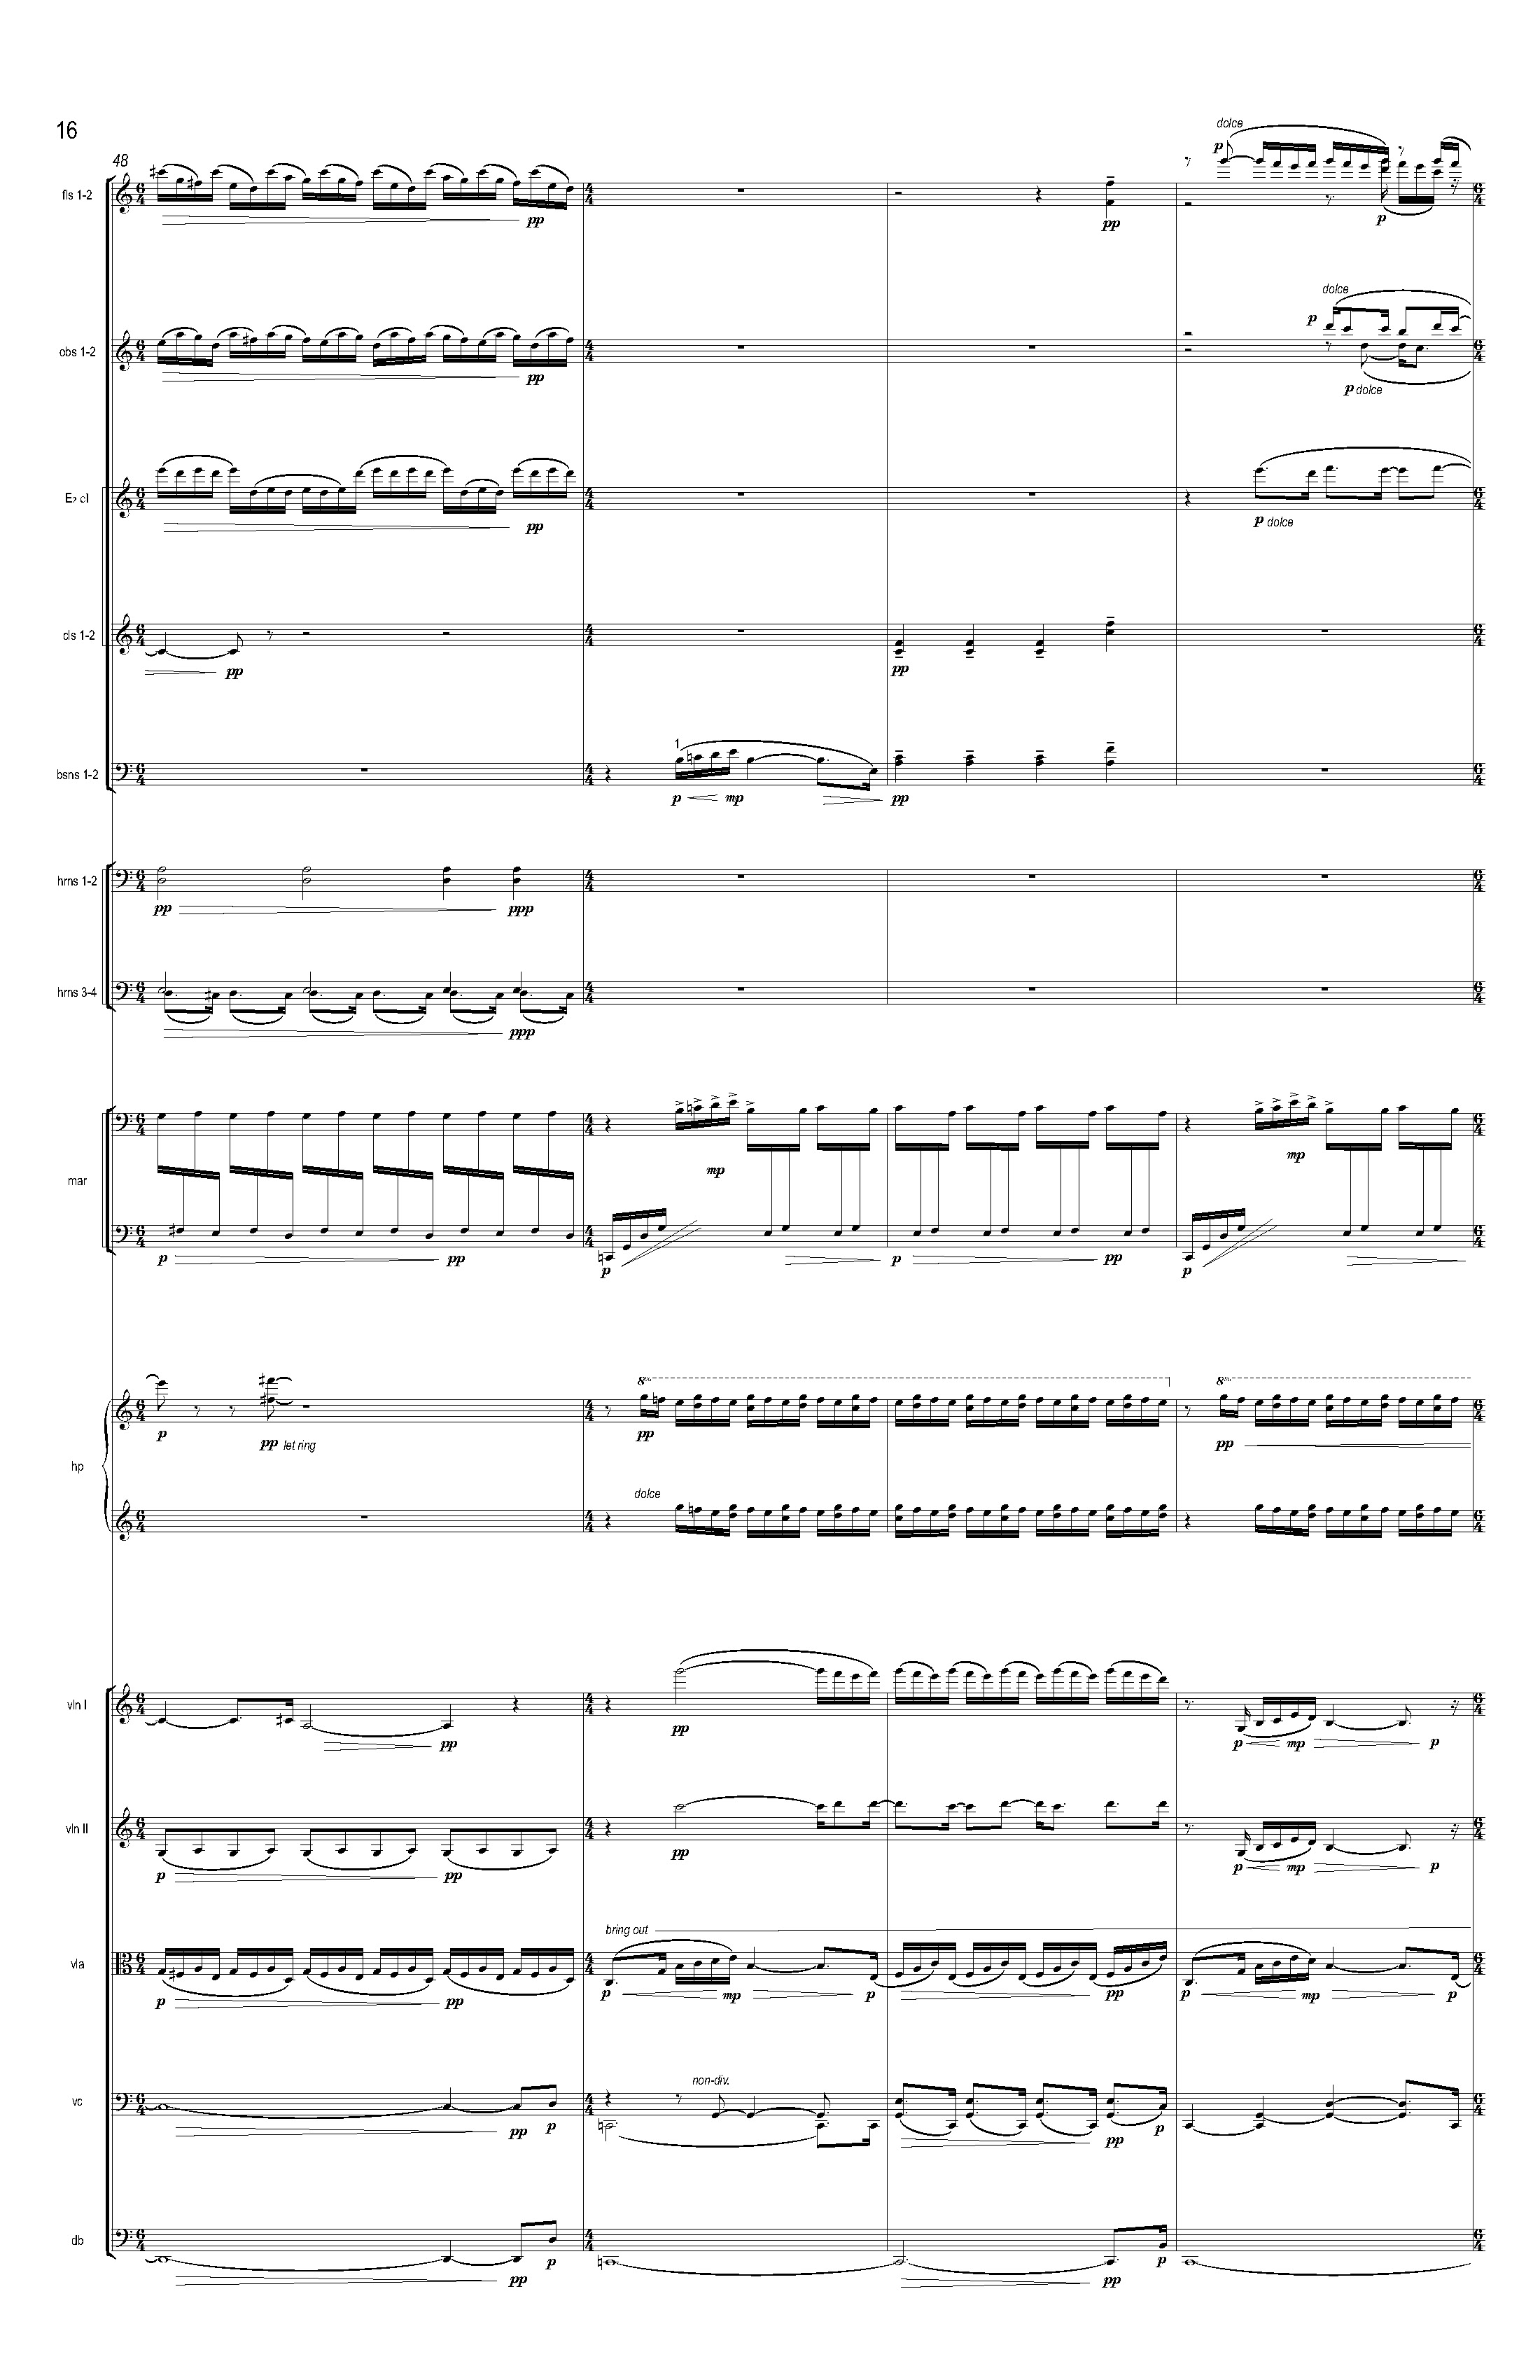 Ciach_Collective Uncommon REVISED_Full Score (Feb 2017)_Seite_22.jpg